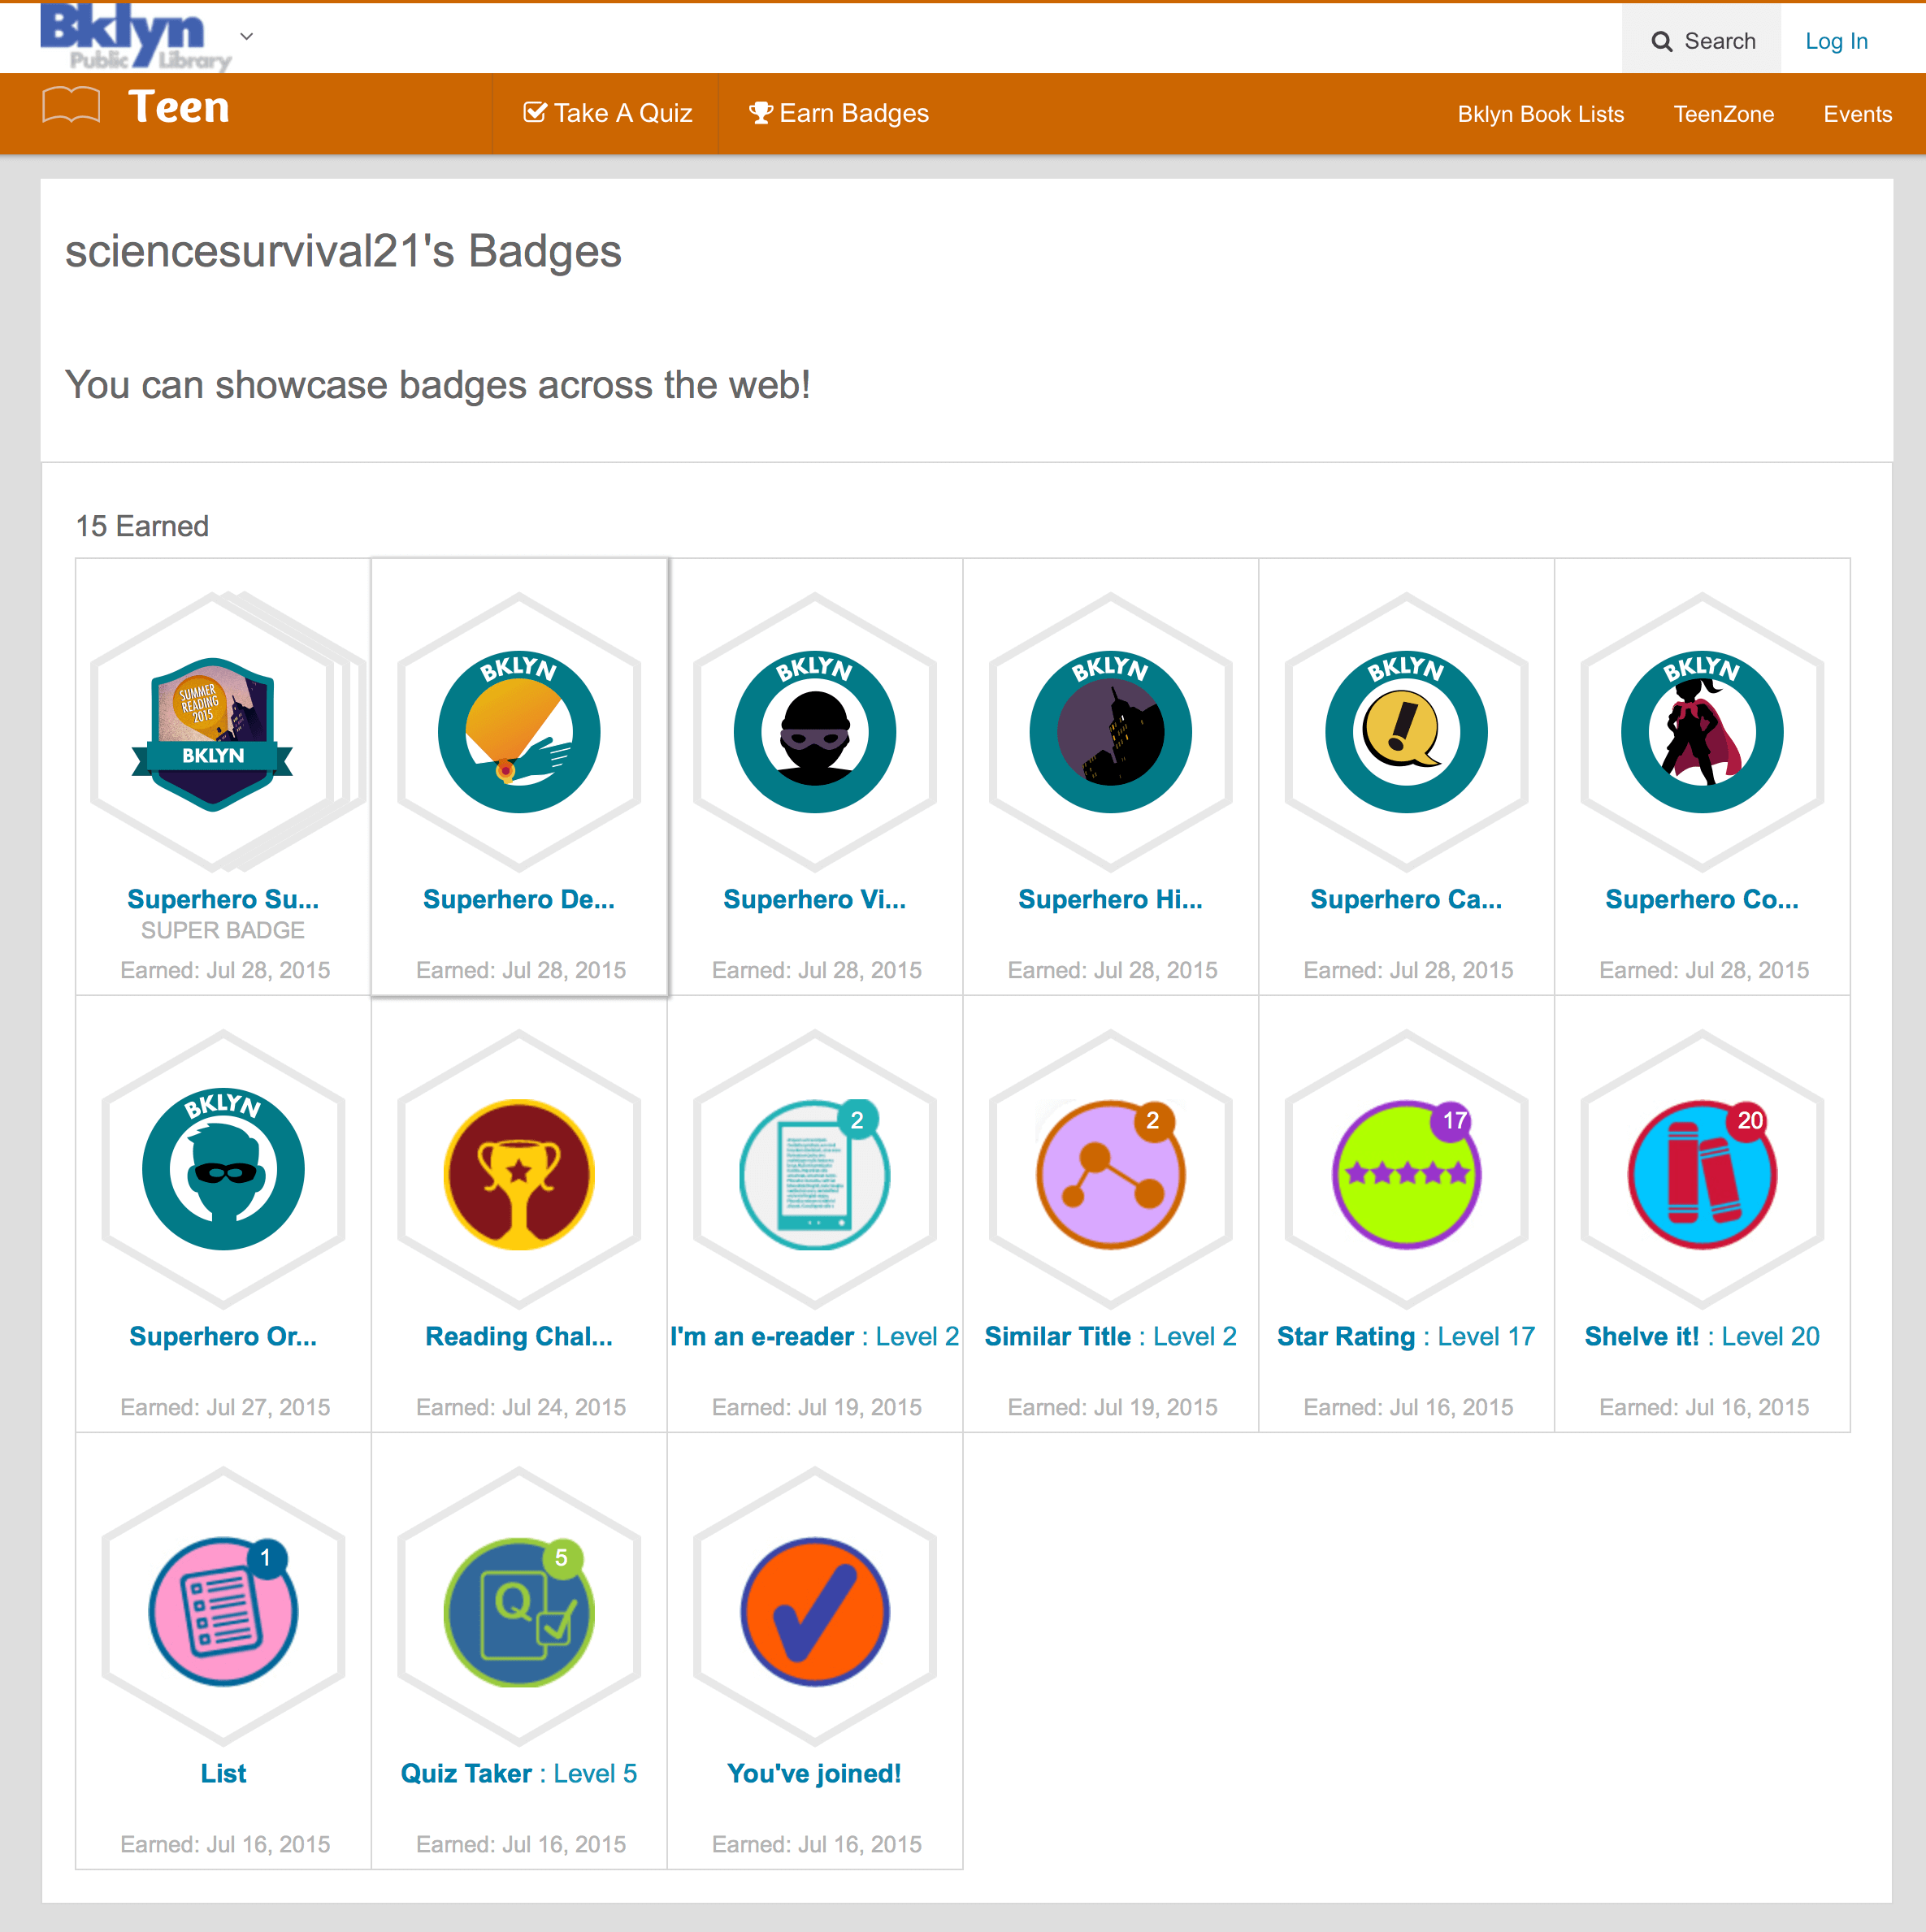 One user's earned badges in a summer site